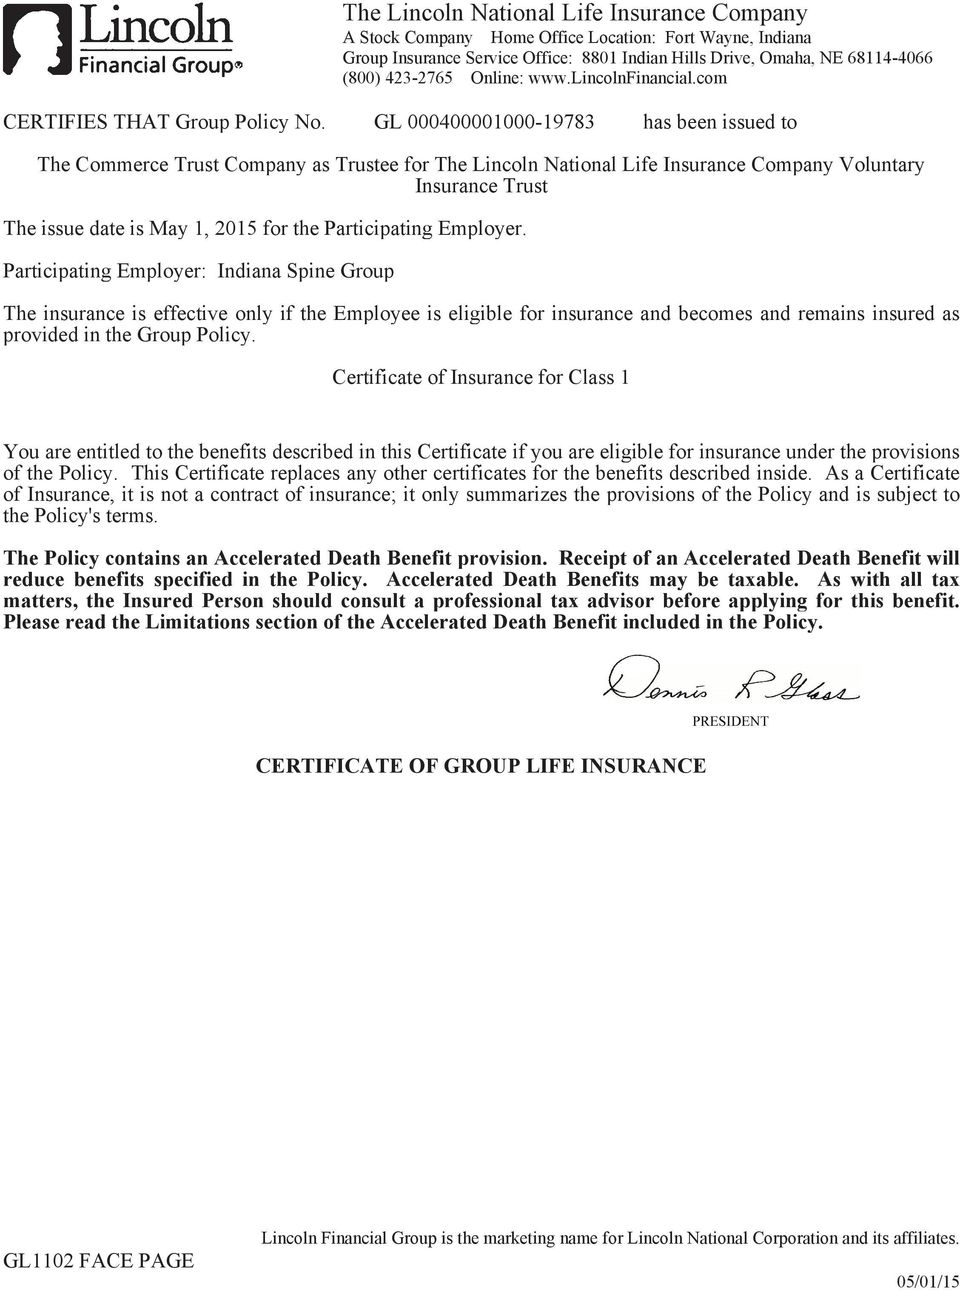 GL 000400001000-19783 has been issued to The Commerce Trust Company as Trustee for The Lincoln National Life Insurance Company Voluntary Insurance Trust The issue date is May 1, 2015 for the